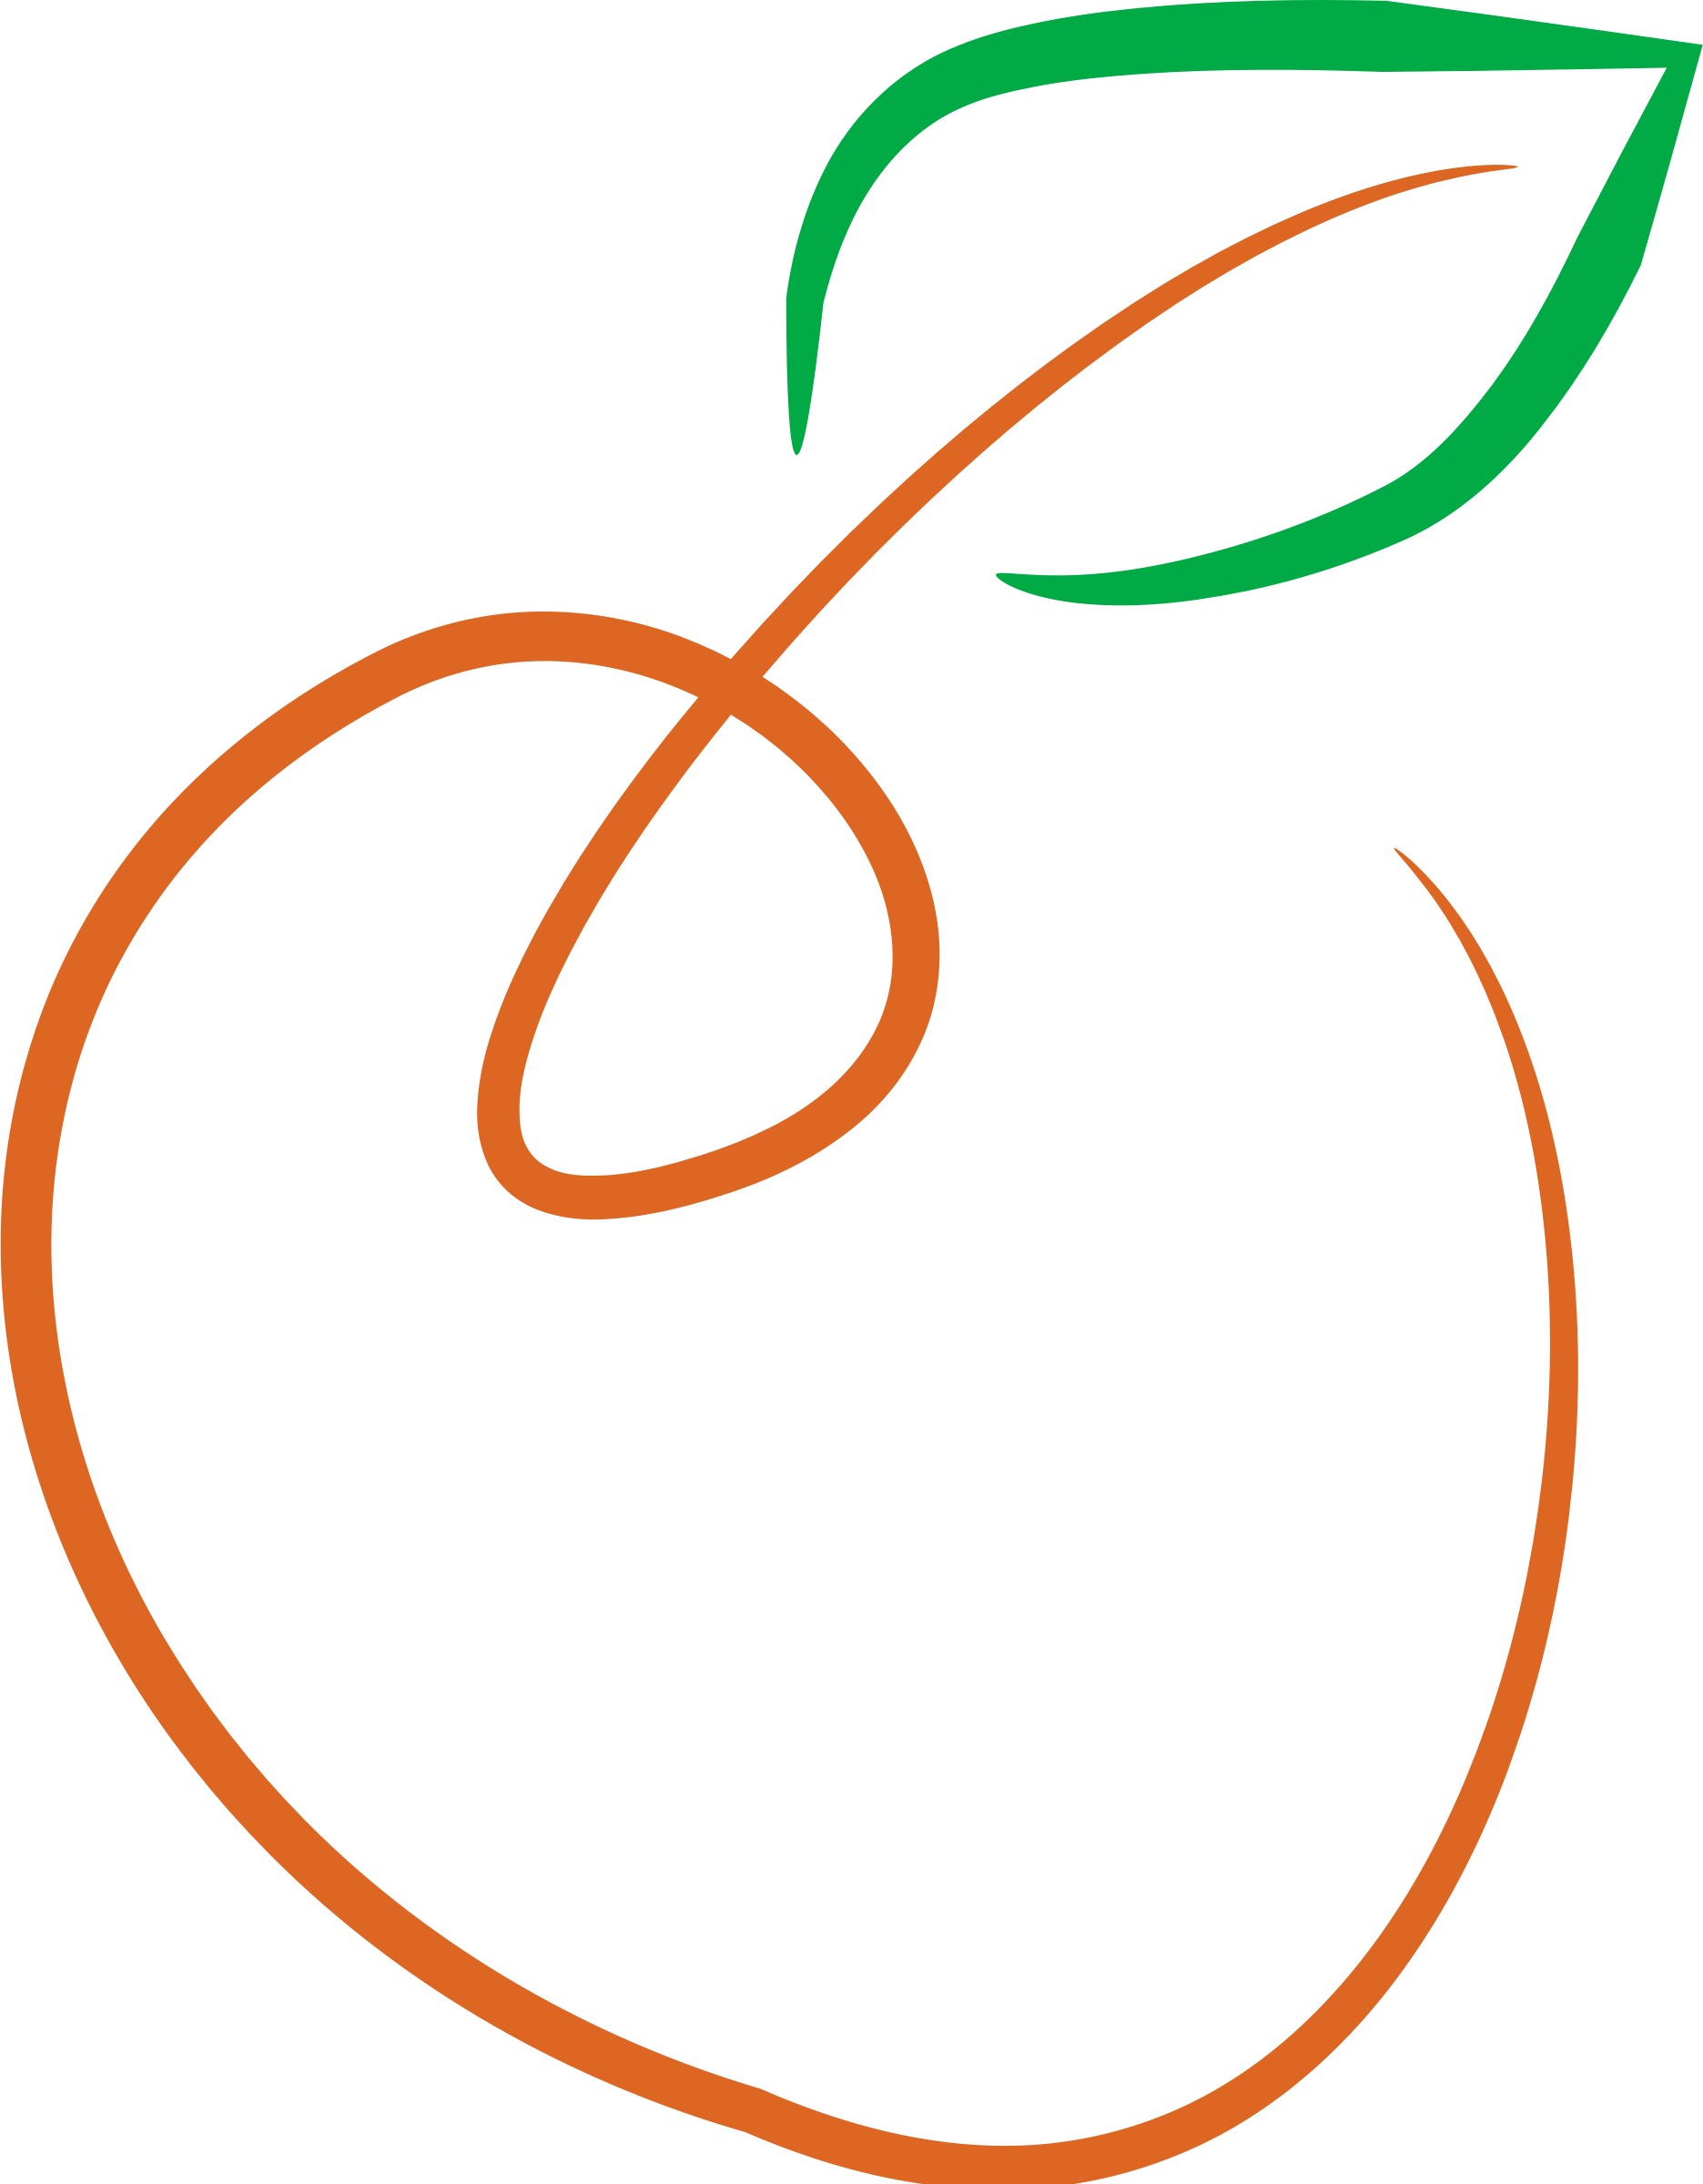 Apple orange clipart image freeuse Clipart - Orange-Colored Apple image freeuse